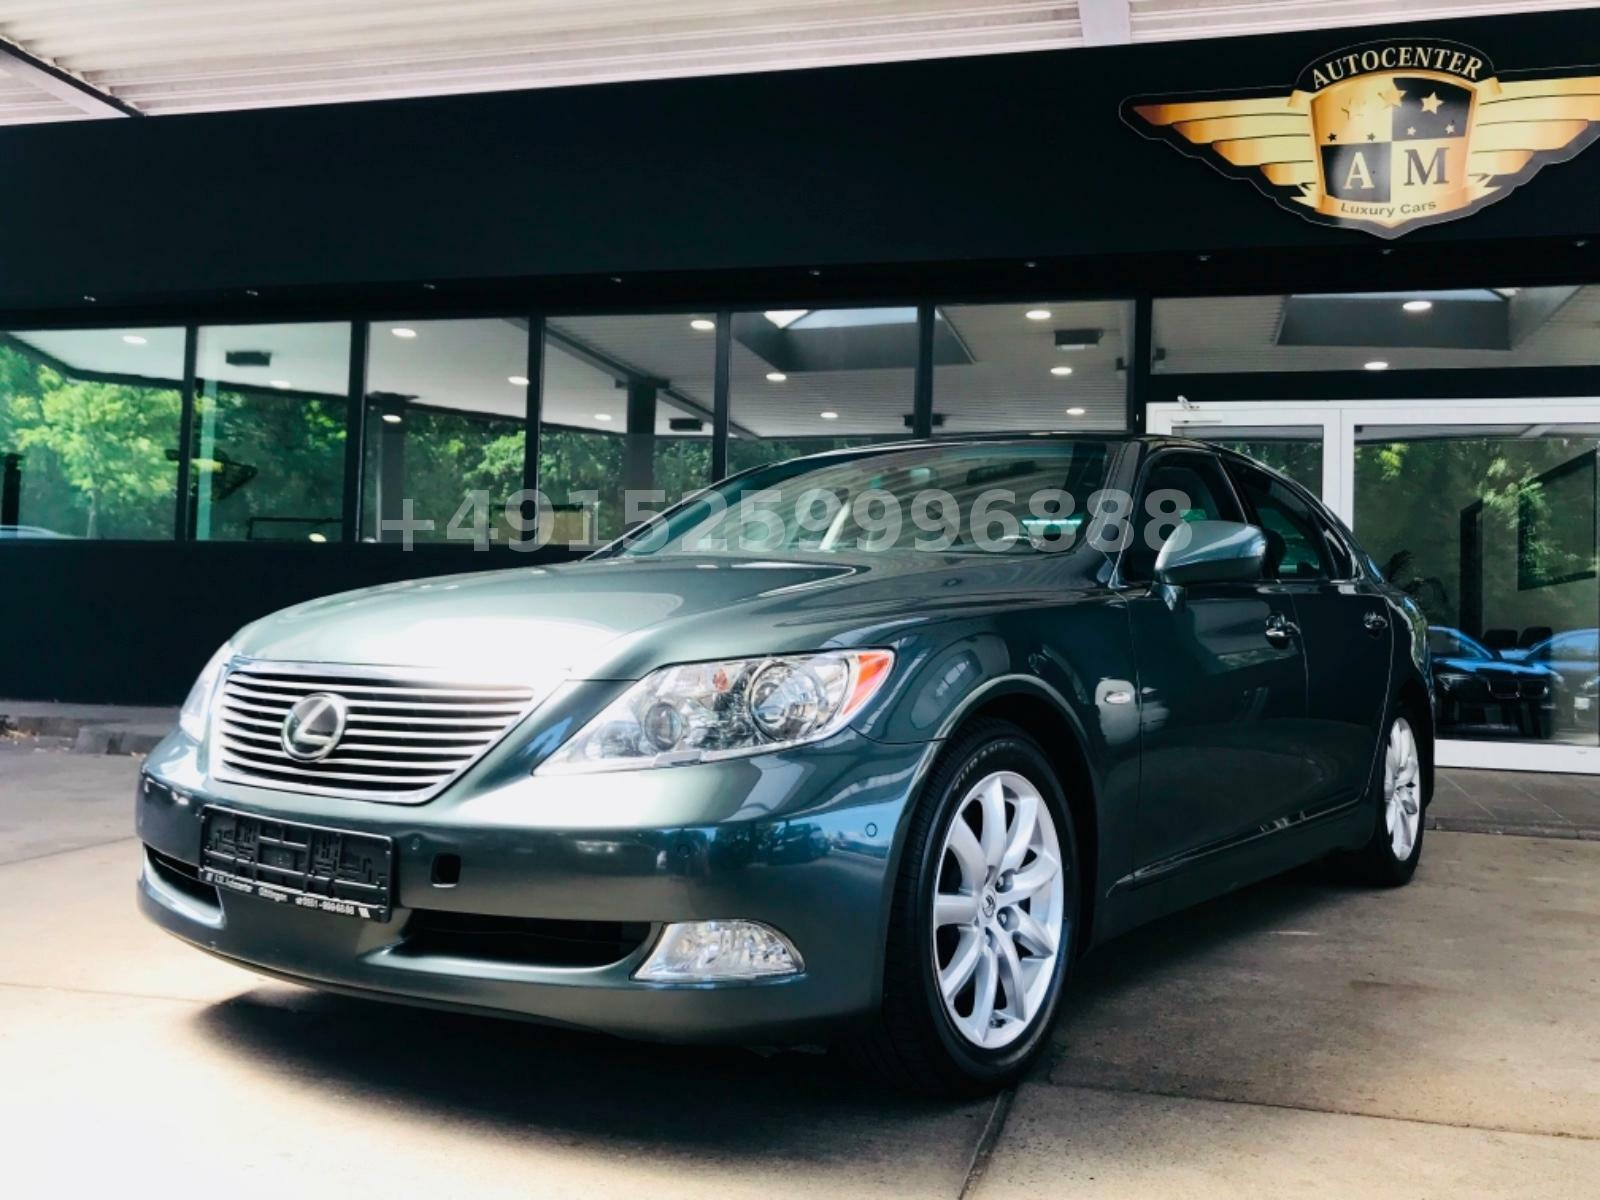 LEXUS LS 460 Voll Option